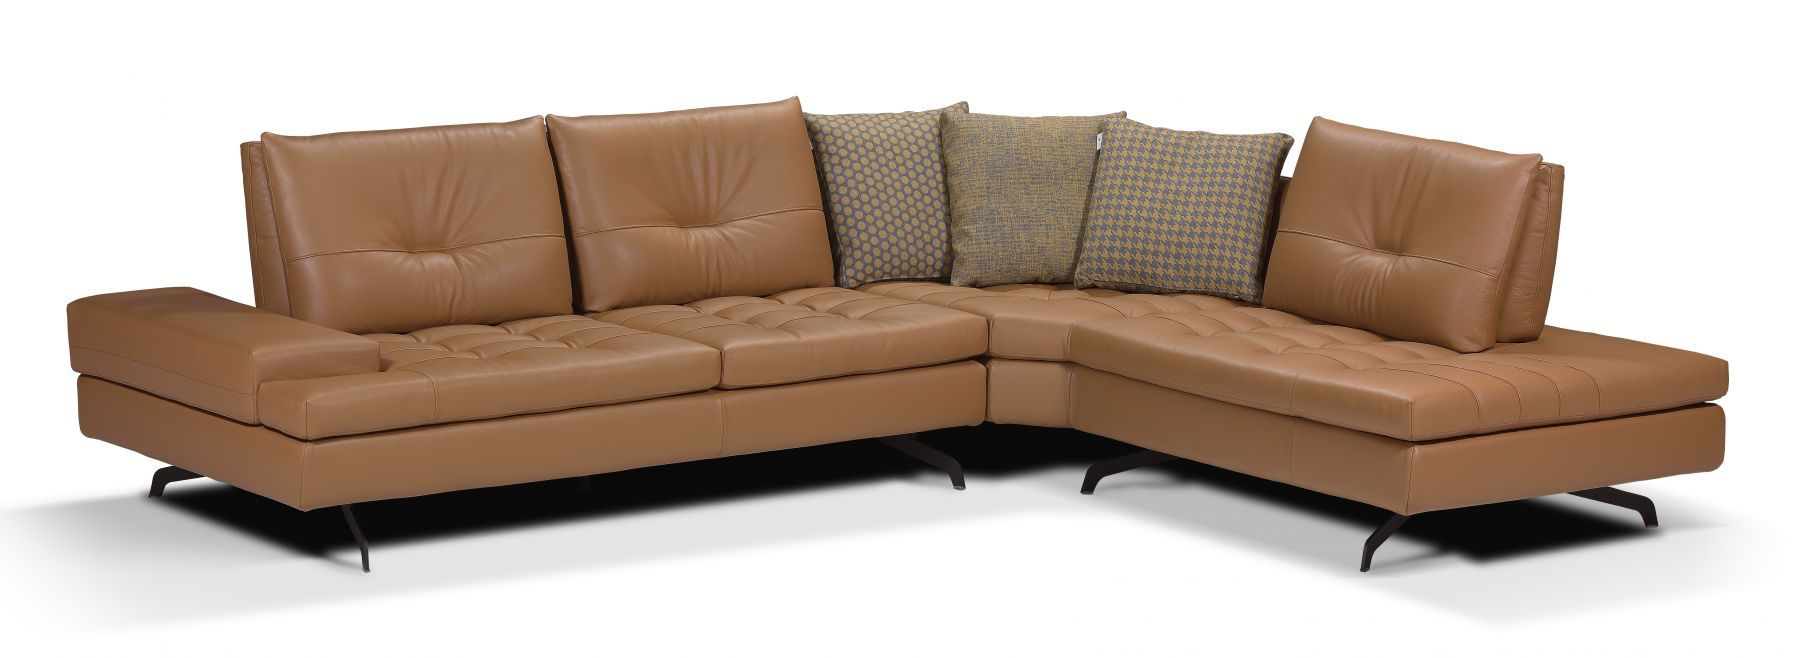 Calia Italia Toffee Home Collections Sectional Couch Sectional